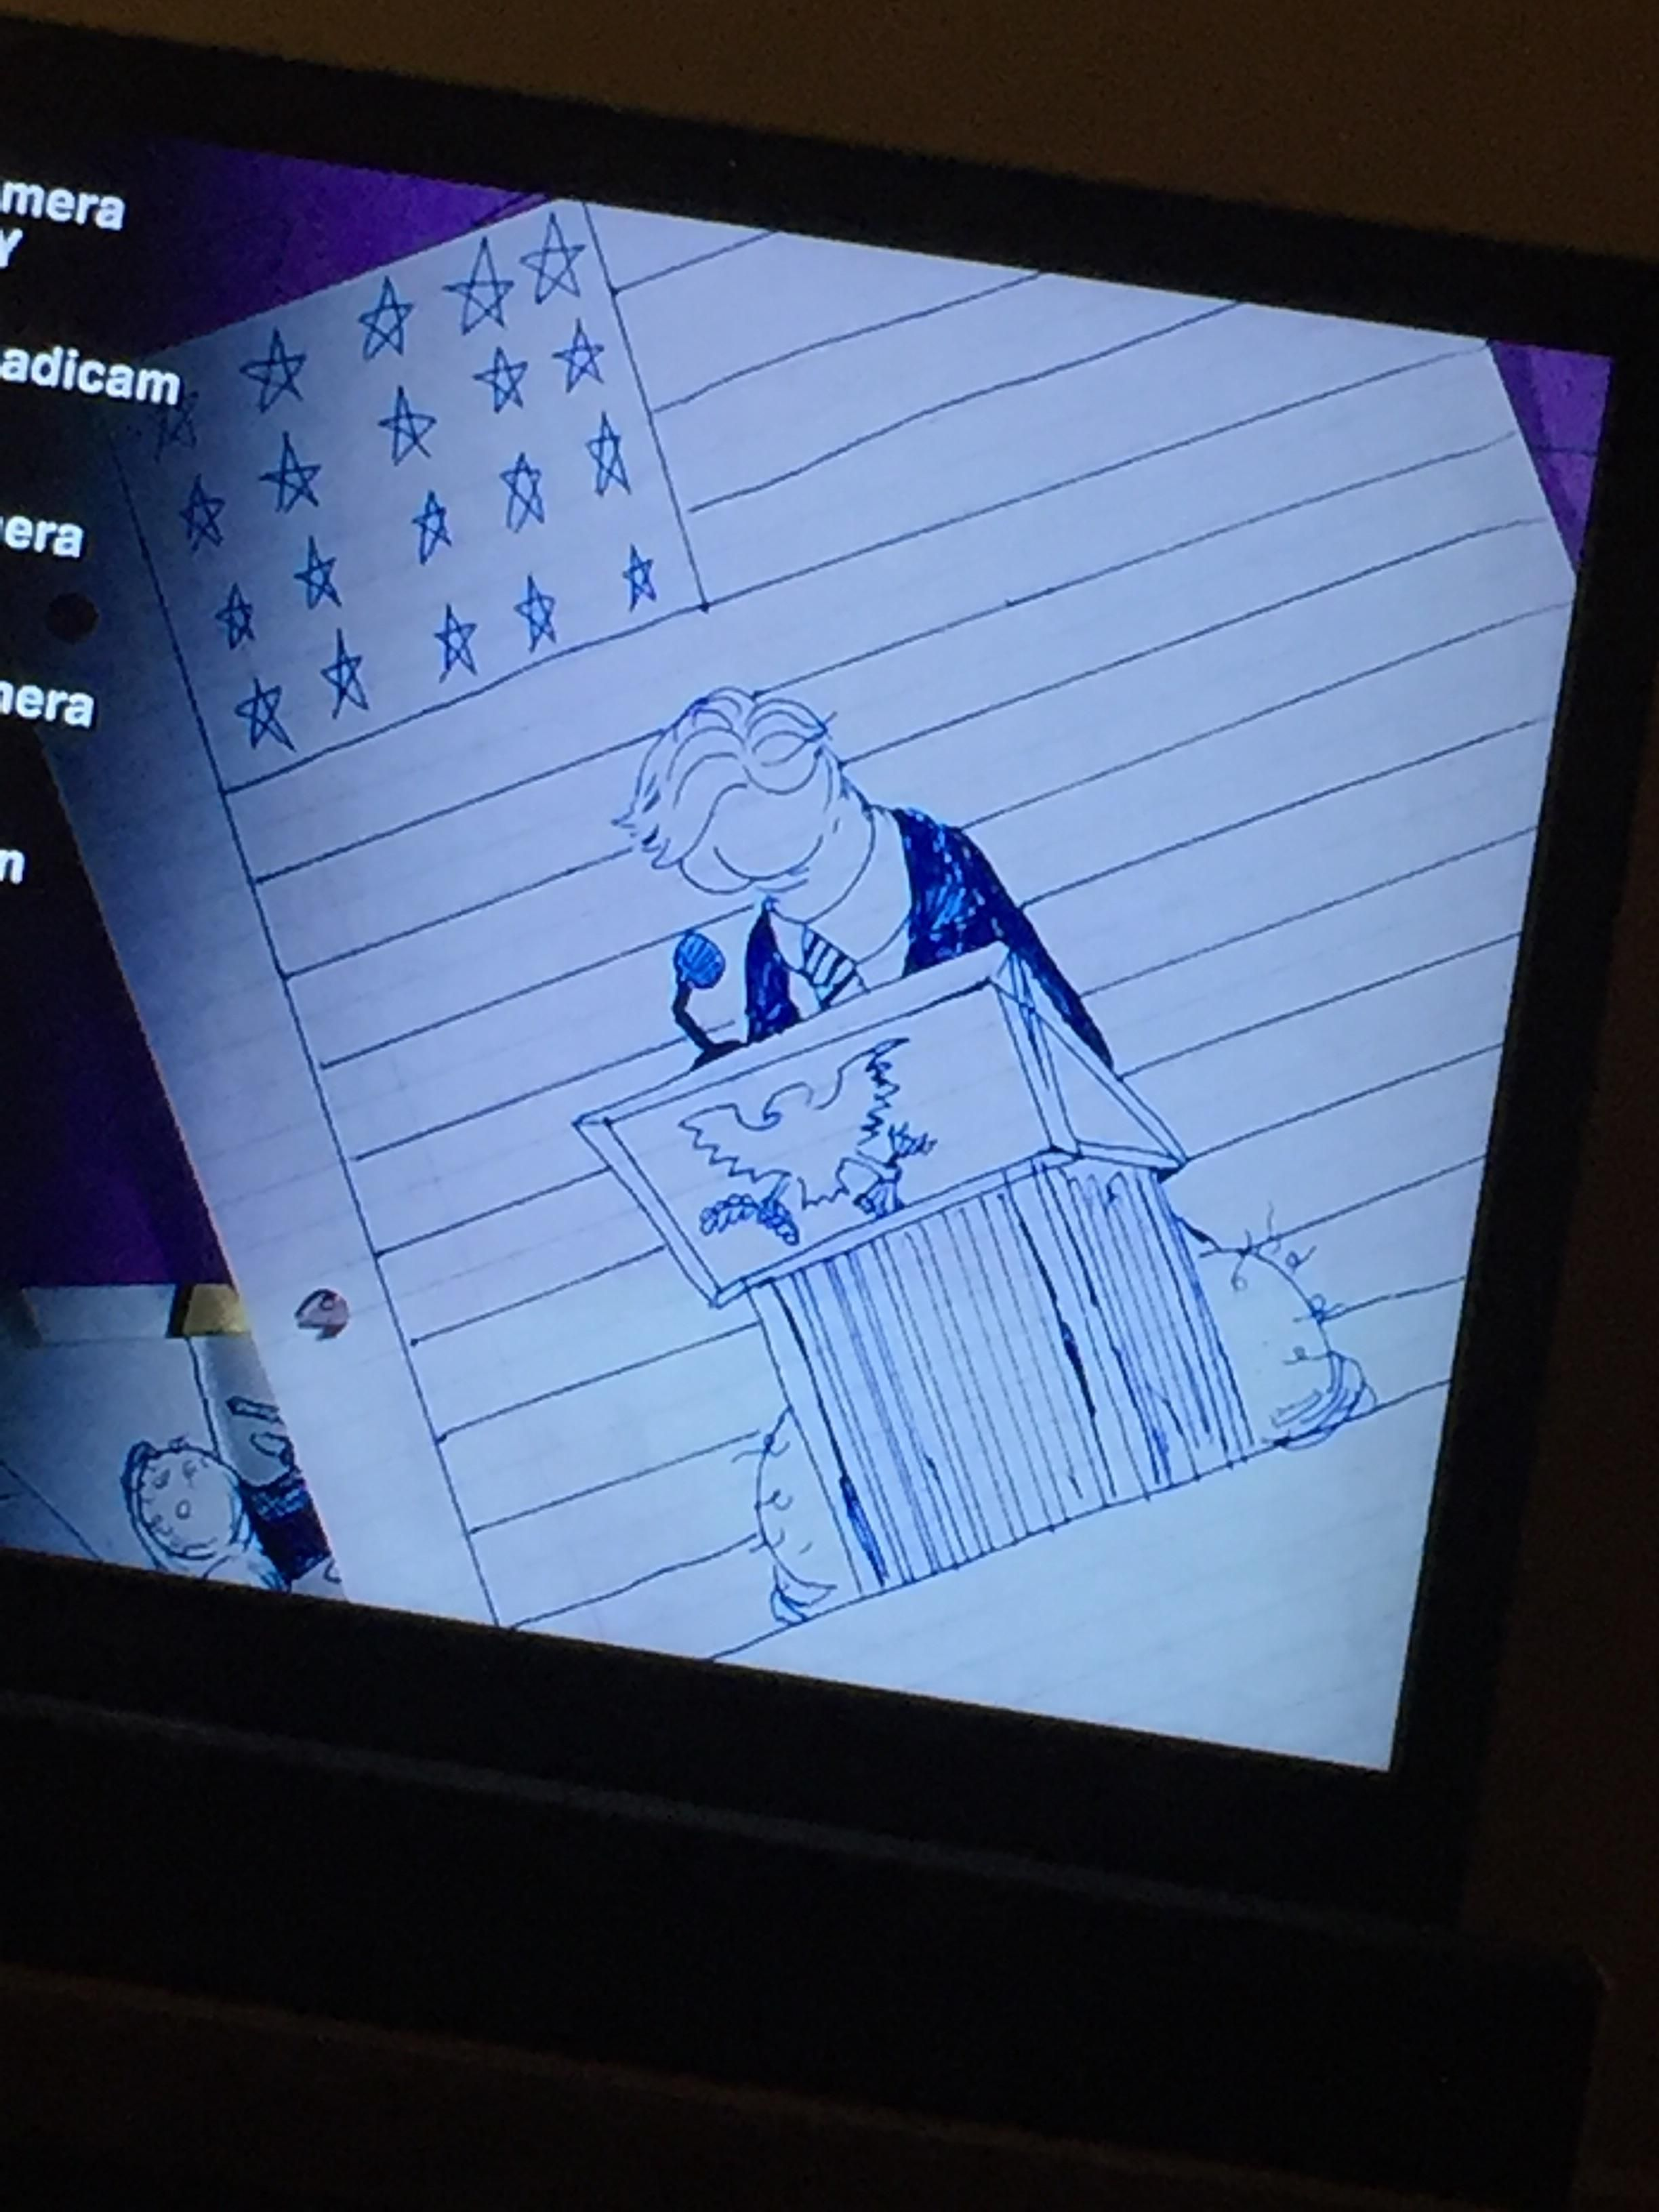 I was watching Superbad when I came across this gem in the credits